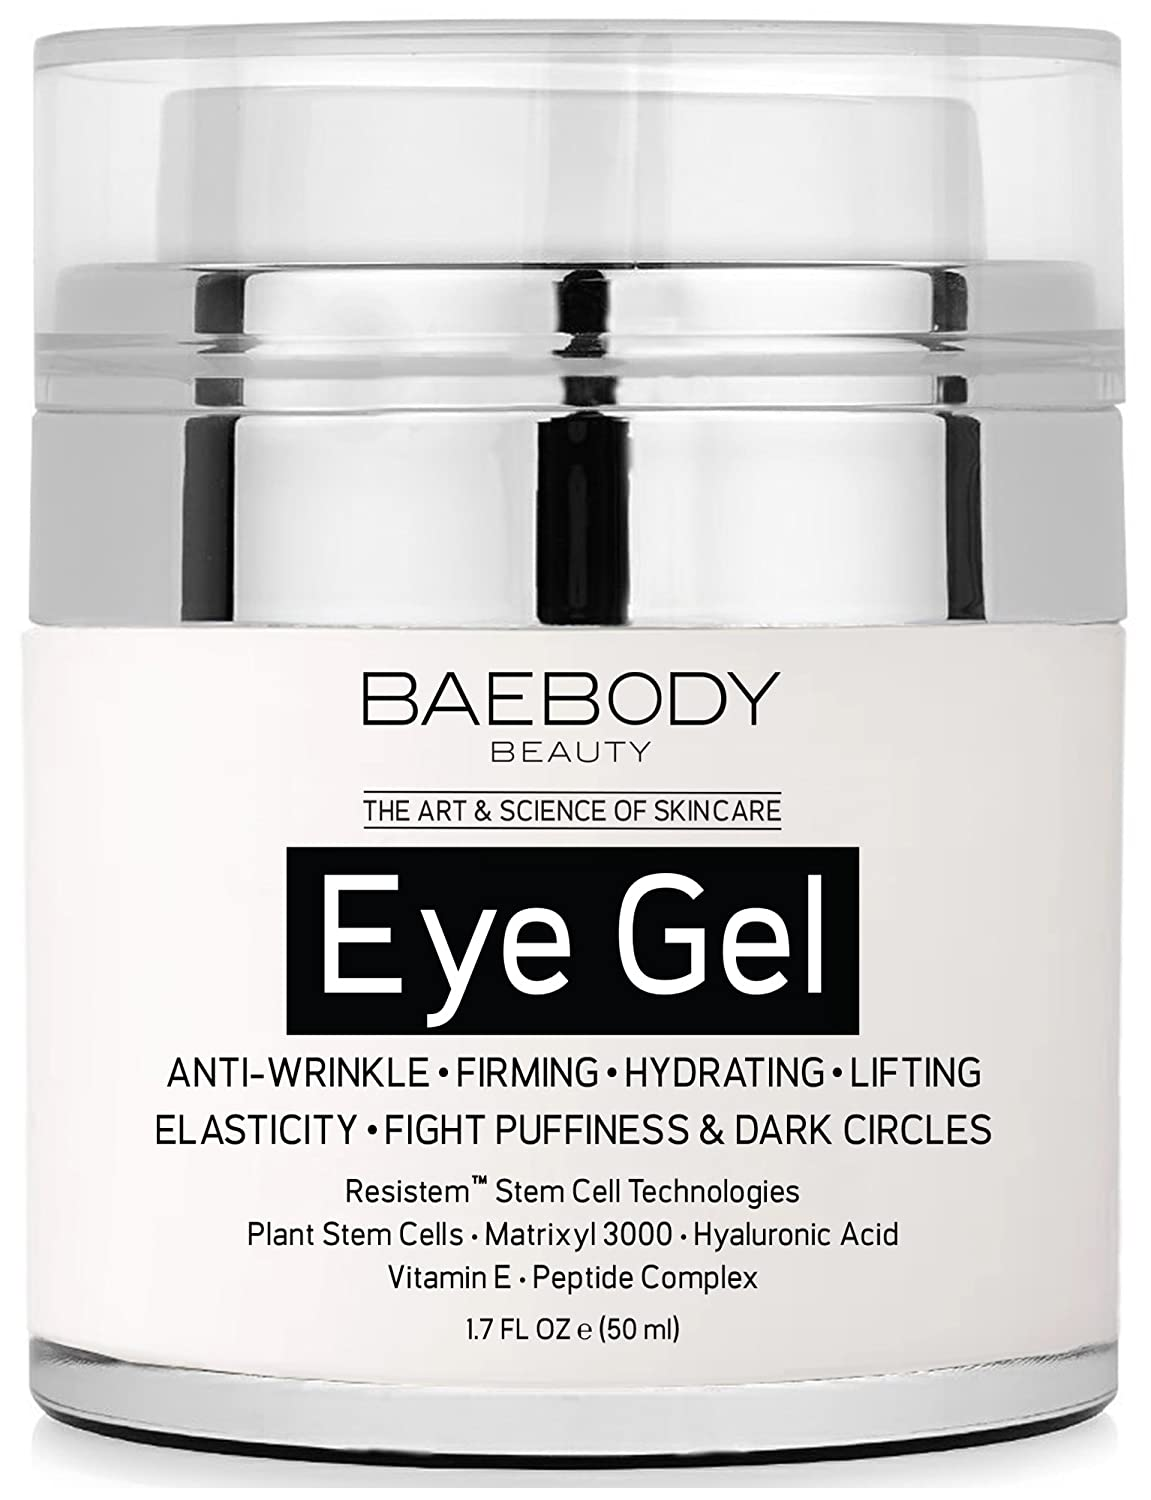 1. Baebody Beauty Eye Gel